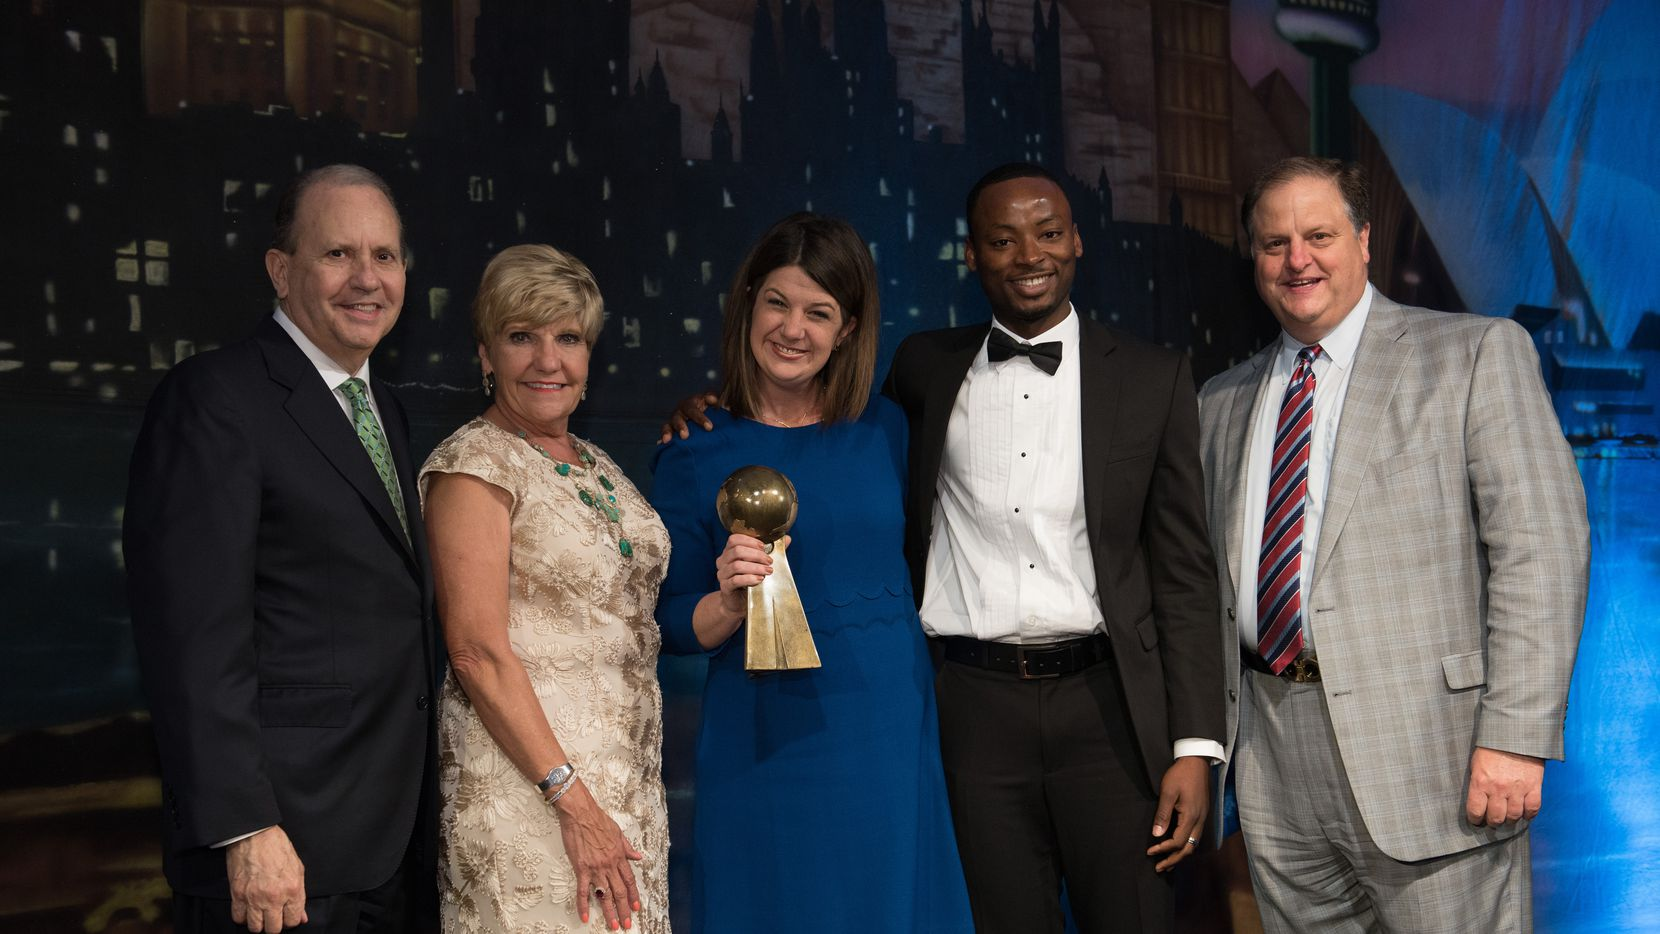 From left, Kenneth Barr, Mayor Betsy Price, Heather Reynolds, Jimmy Alphonce and Johnny Campbell at Fort Worth Sister Cities Mayor's International Dinner at the Omni Hotel in Fort Worth.